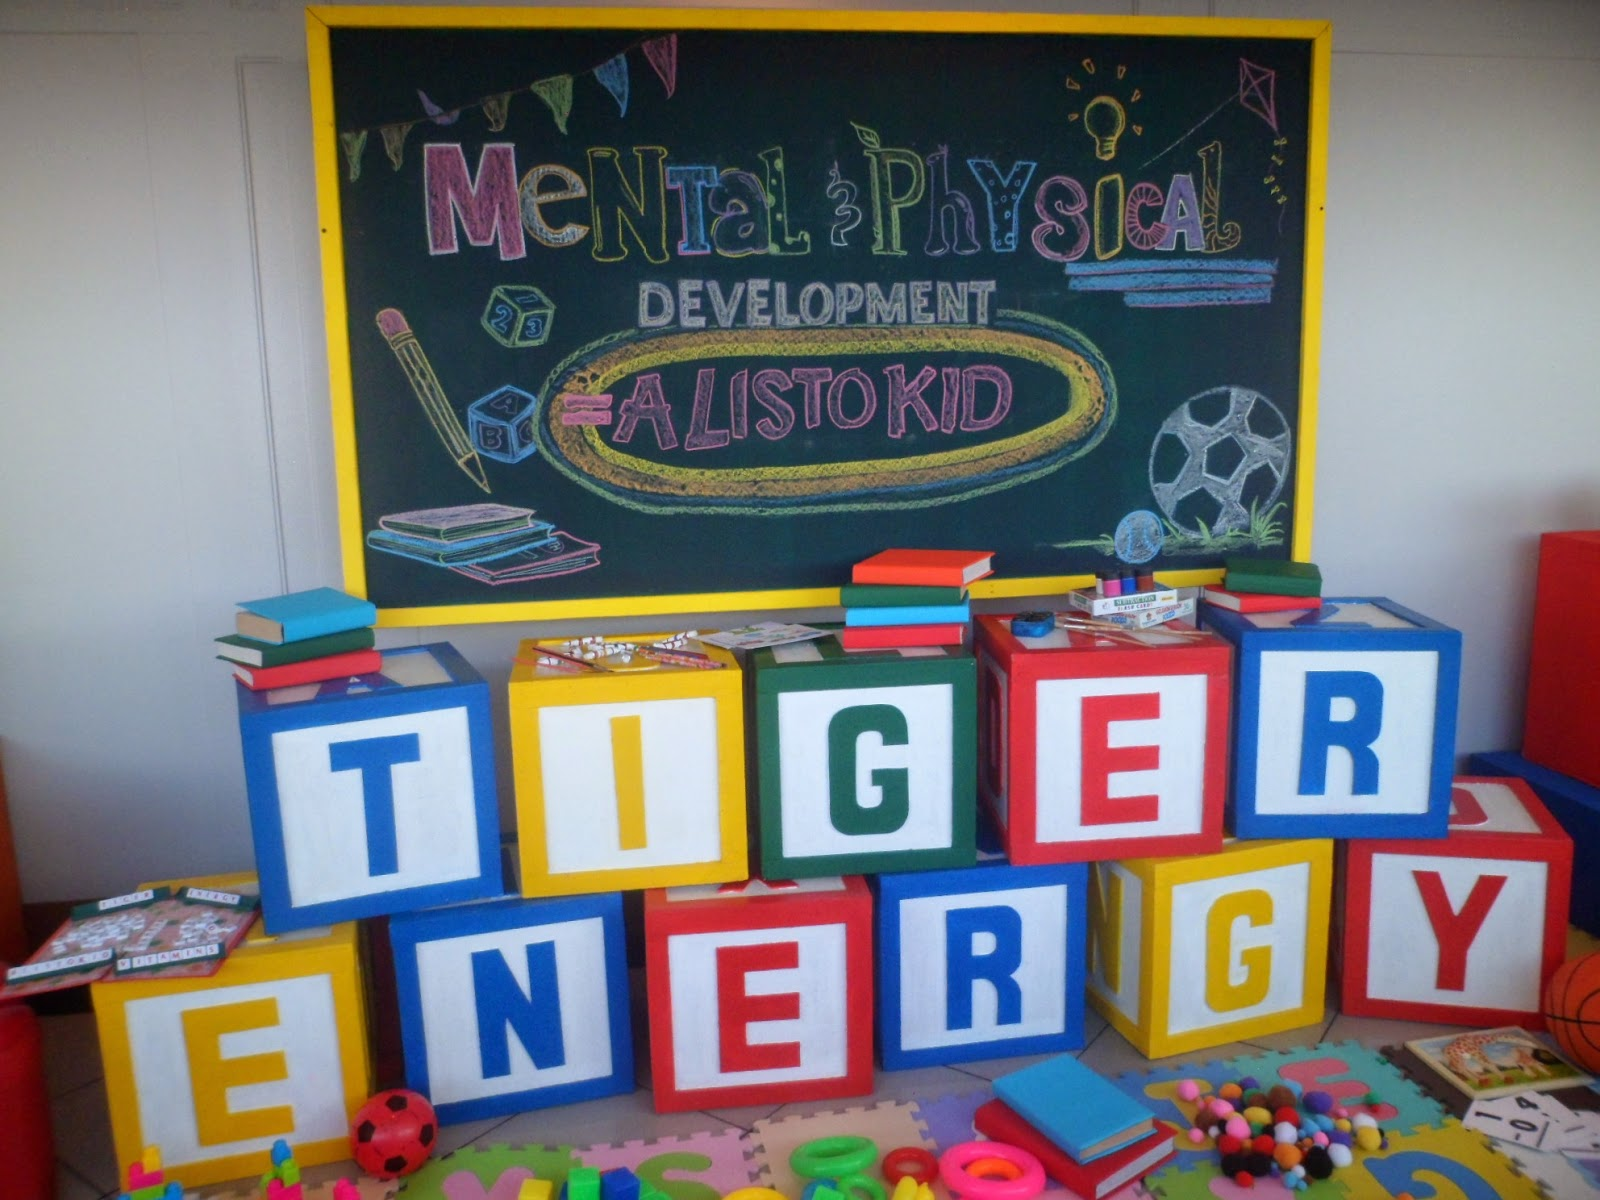 Tiger Energy Biscuits for Mental and Physical Development of Alisto Kid